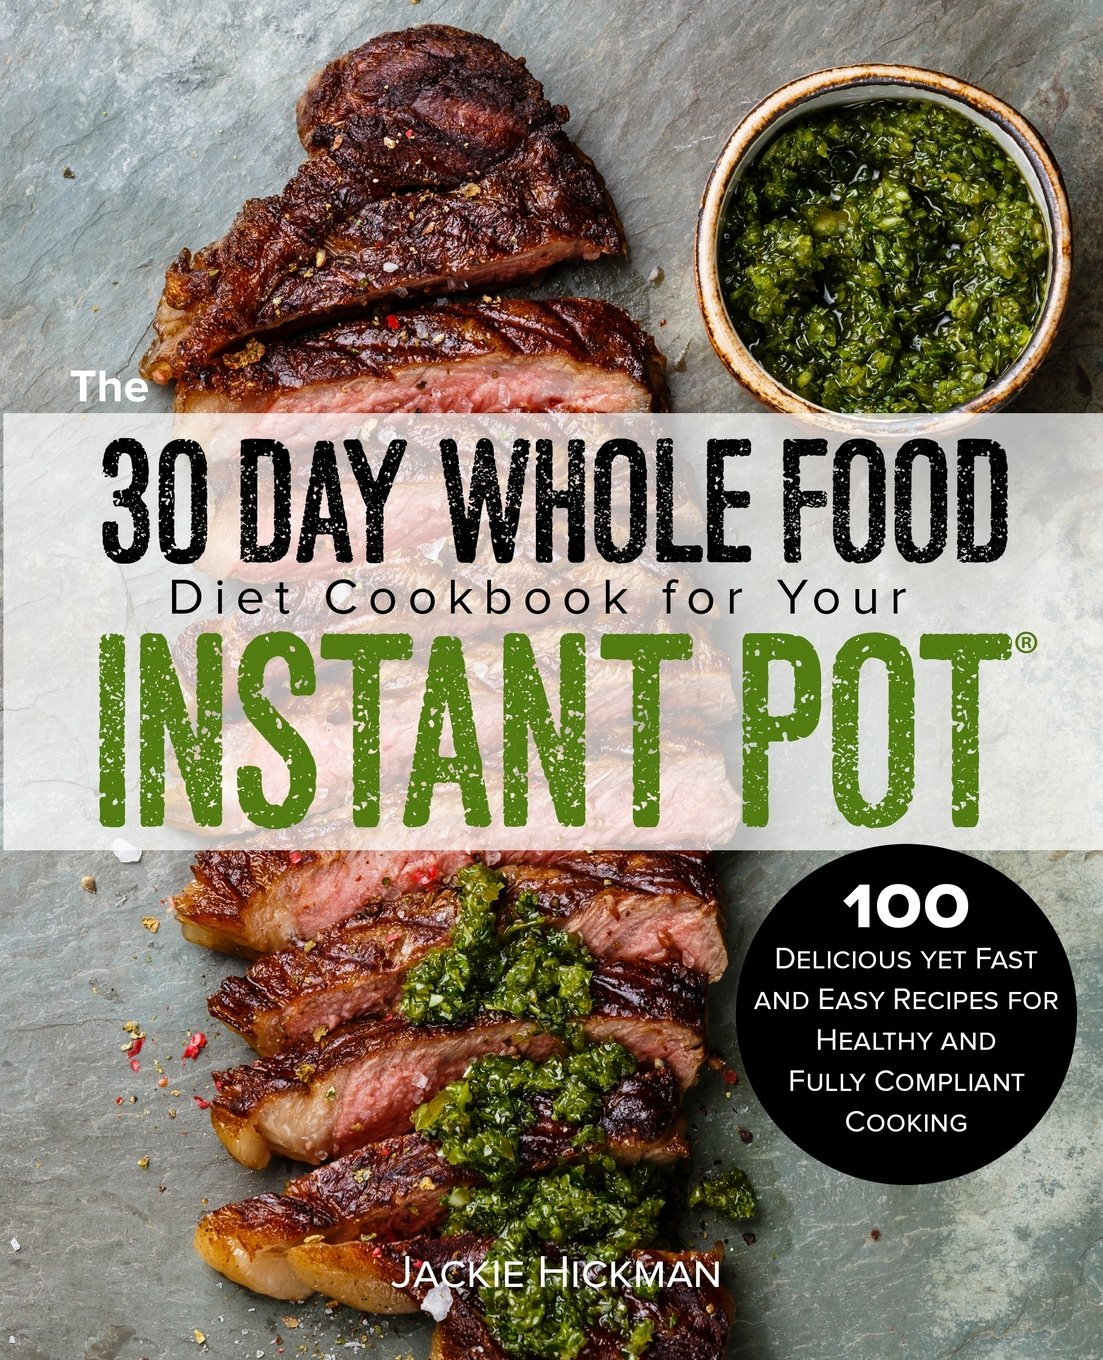 Download The 30 Day Whole Food Diet Cookbook for Your Instant Pot: 100 Delicious yet Fast and Easy Recipes for Healthy and Fully Compliant Cooking pdf epub